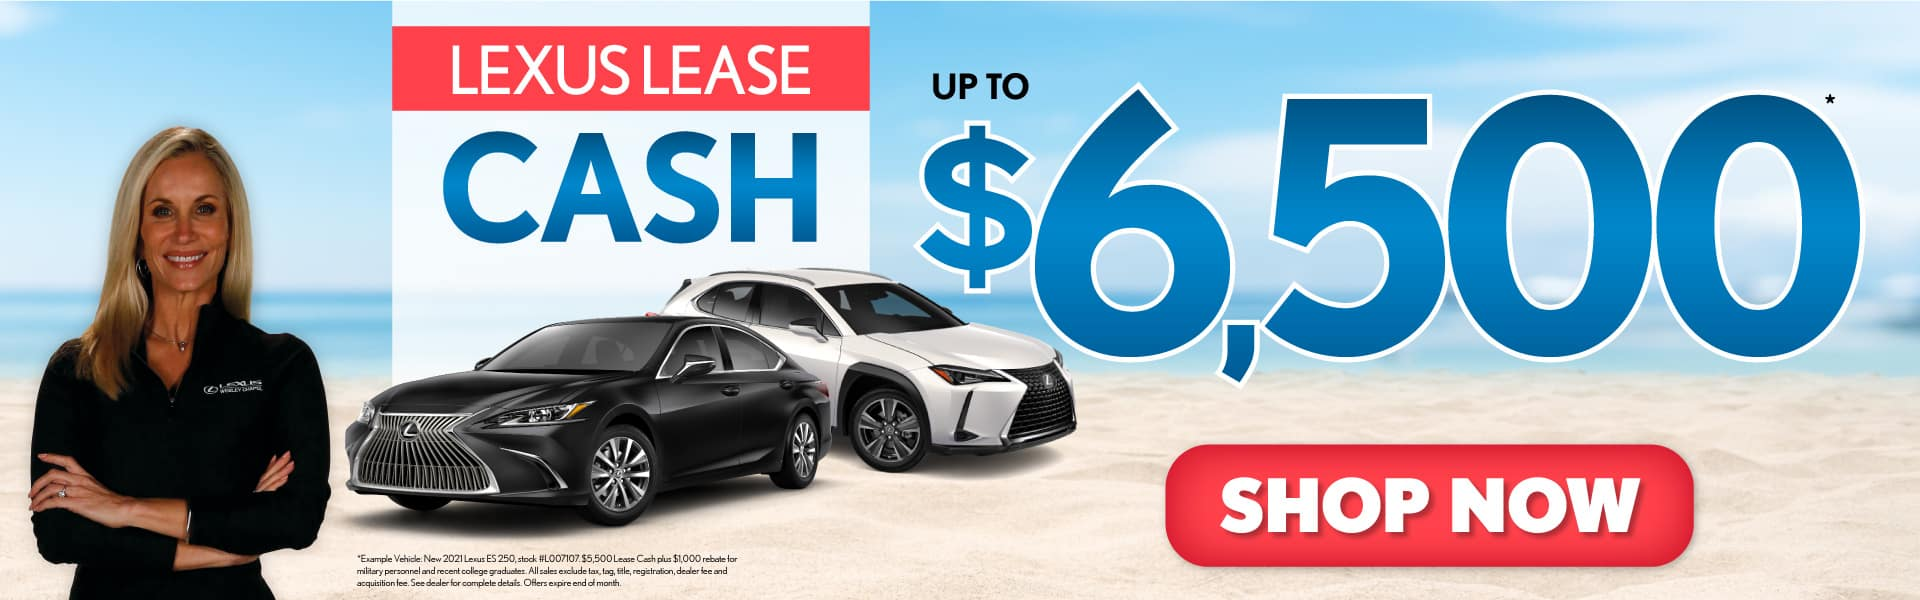 Lexus Lease Cash up to $6500 - ACT NOW